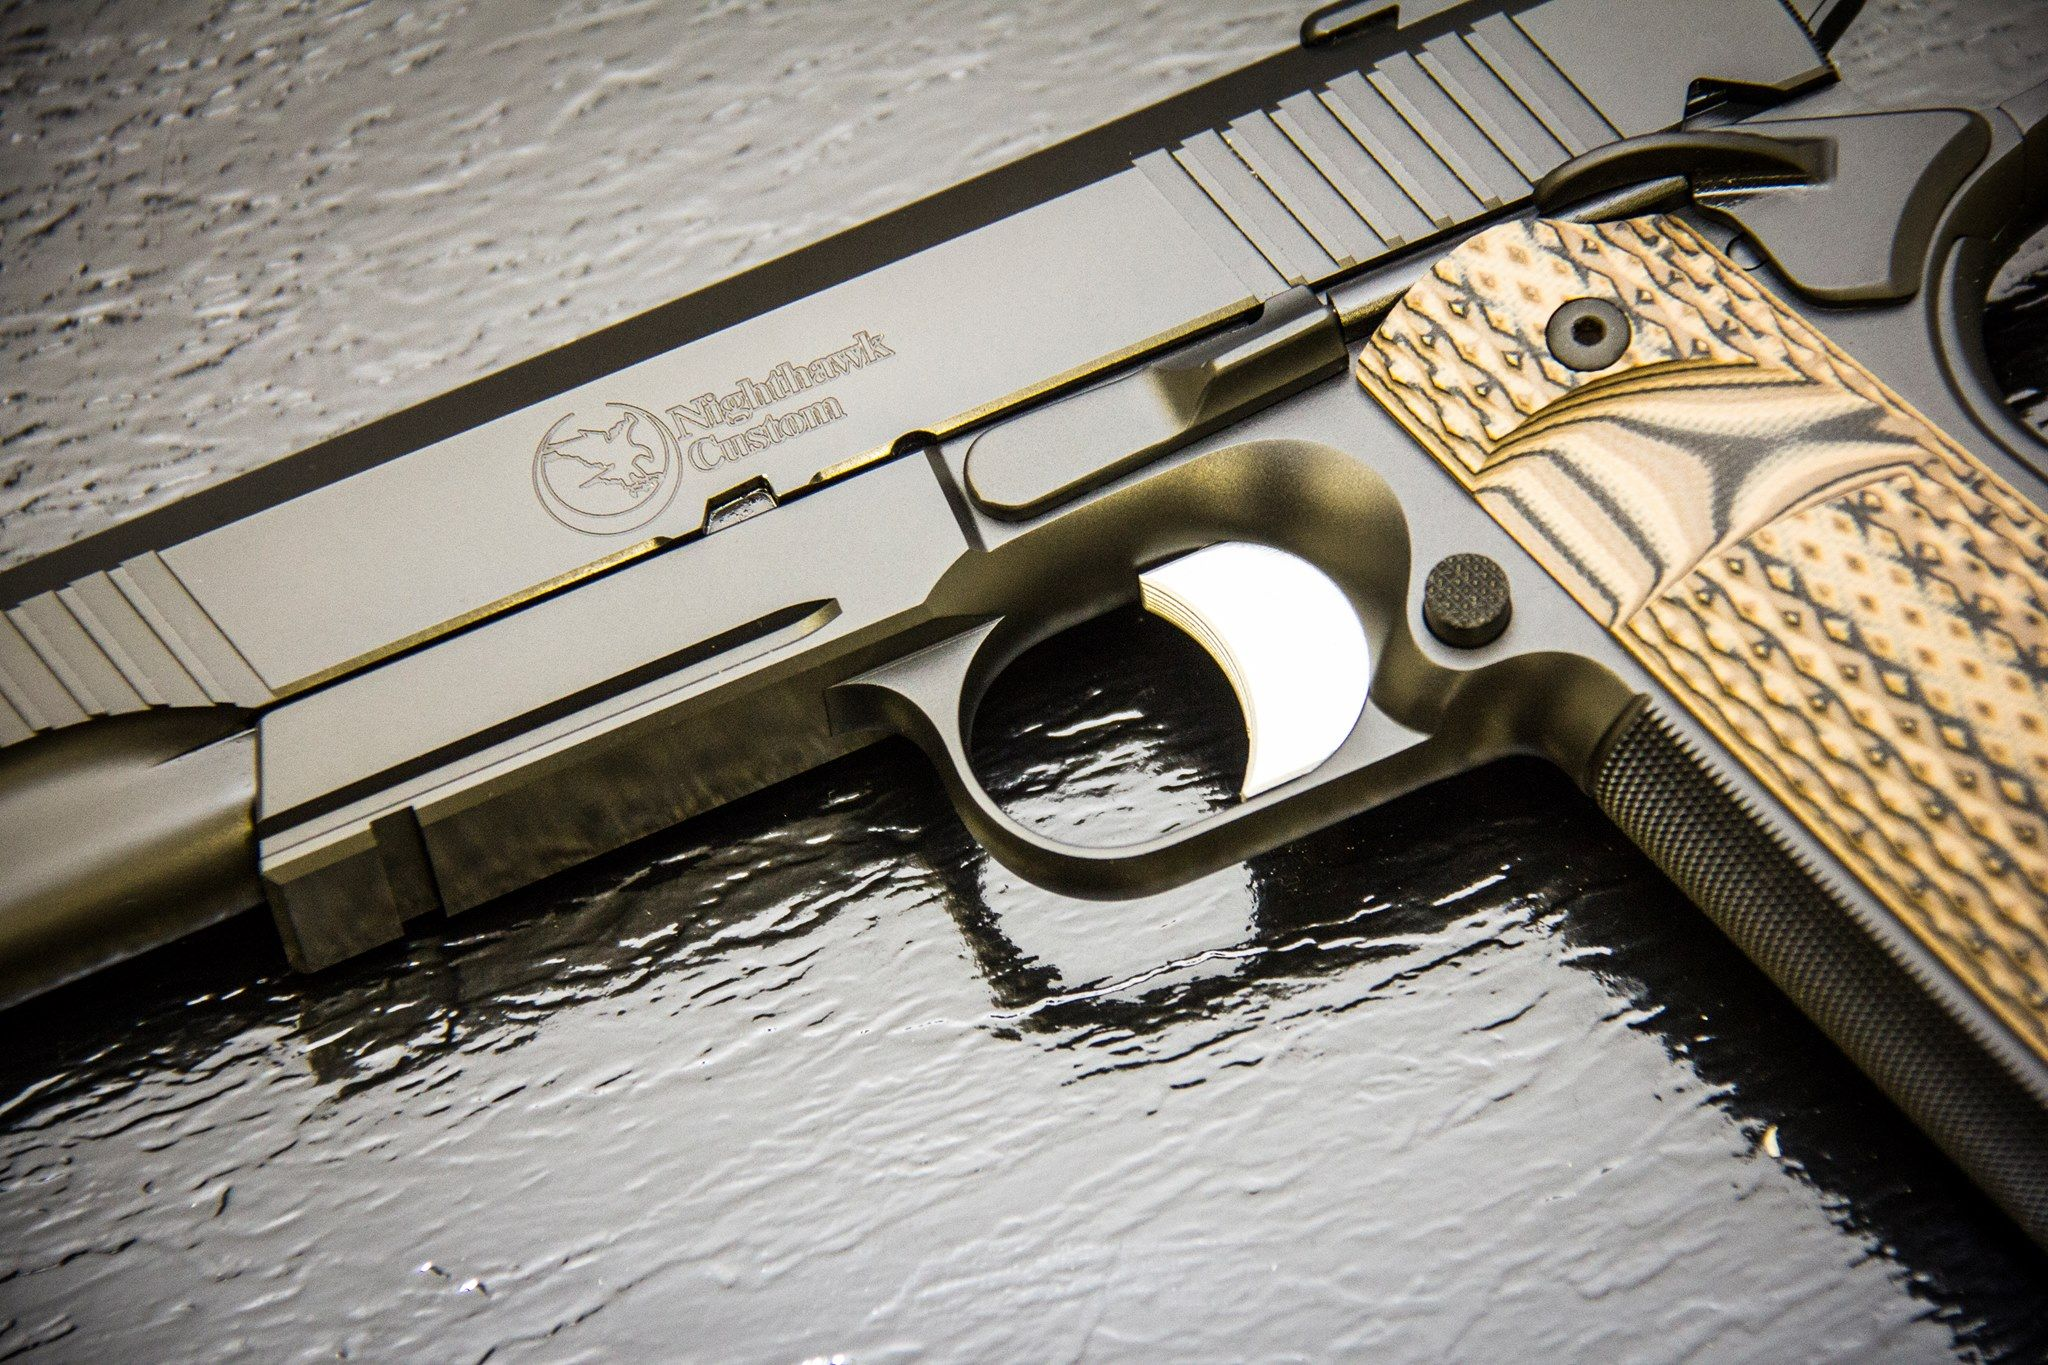 Come look at our selection of NIGHTHAWK CUSTOM FIREARMS at Blue Ridge Arsenal